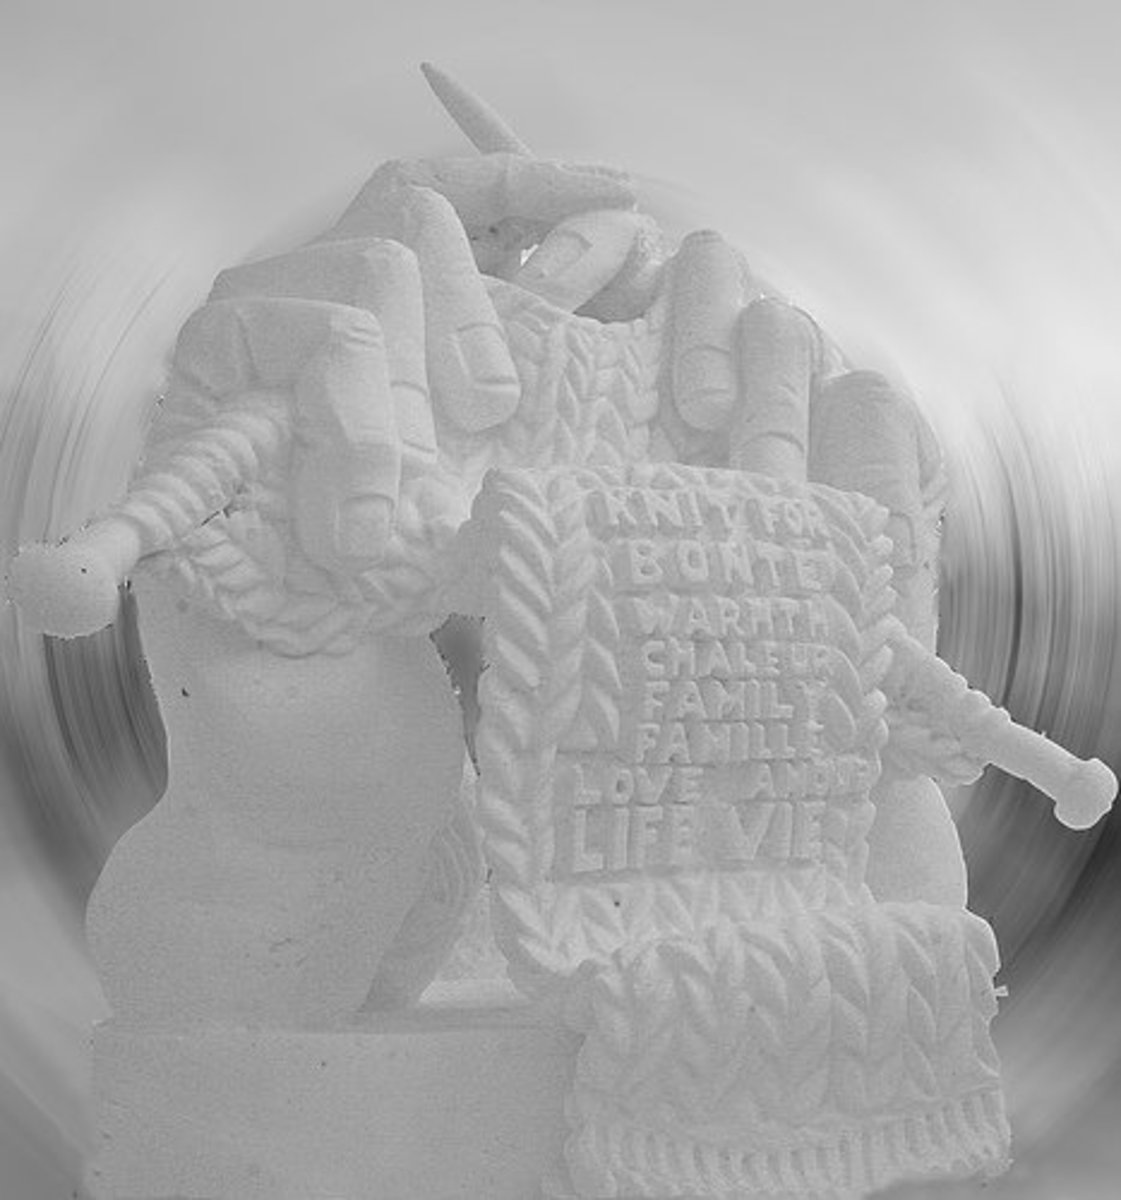 Knitting Hands Sculpture: the entry of the Alberta team won the People's Choice Award at Winterlude's National Snow Sculpture Competition in Ottawa.